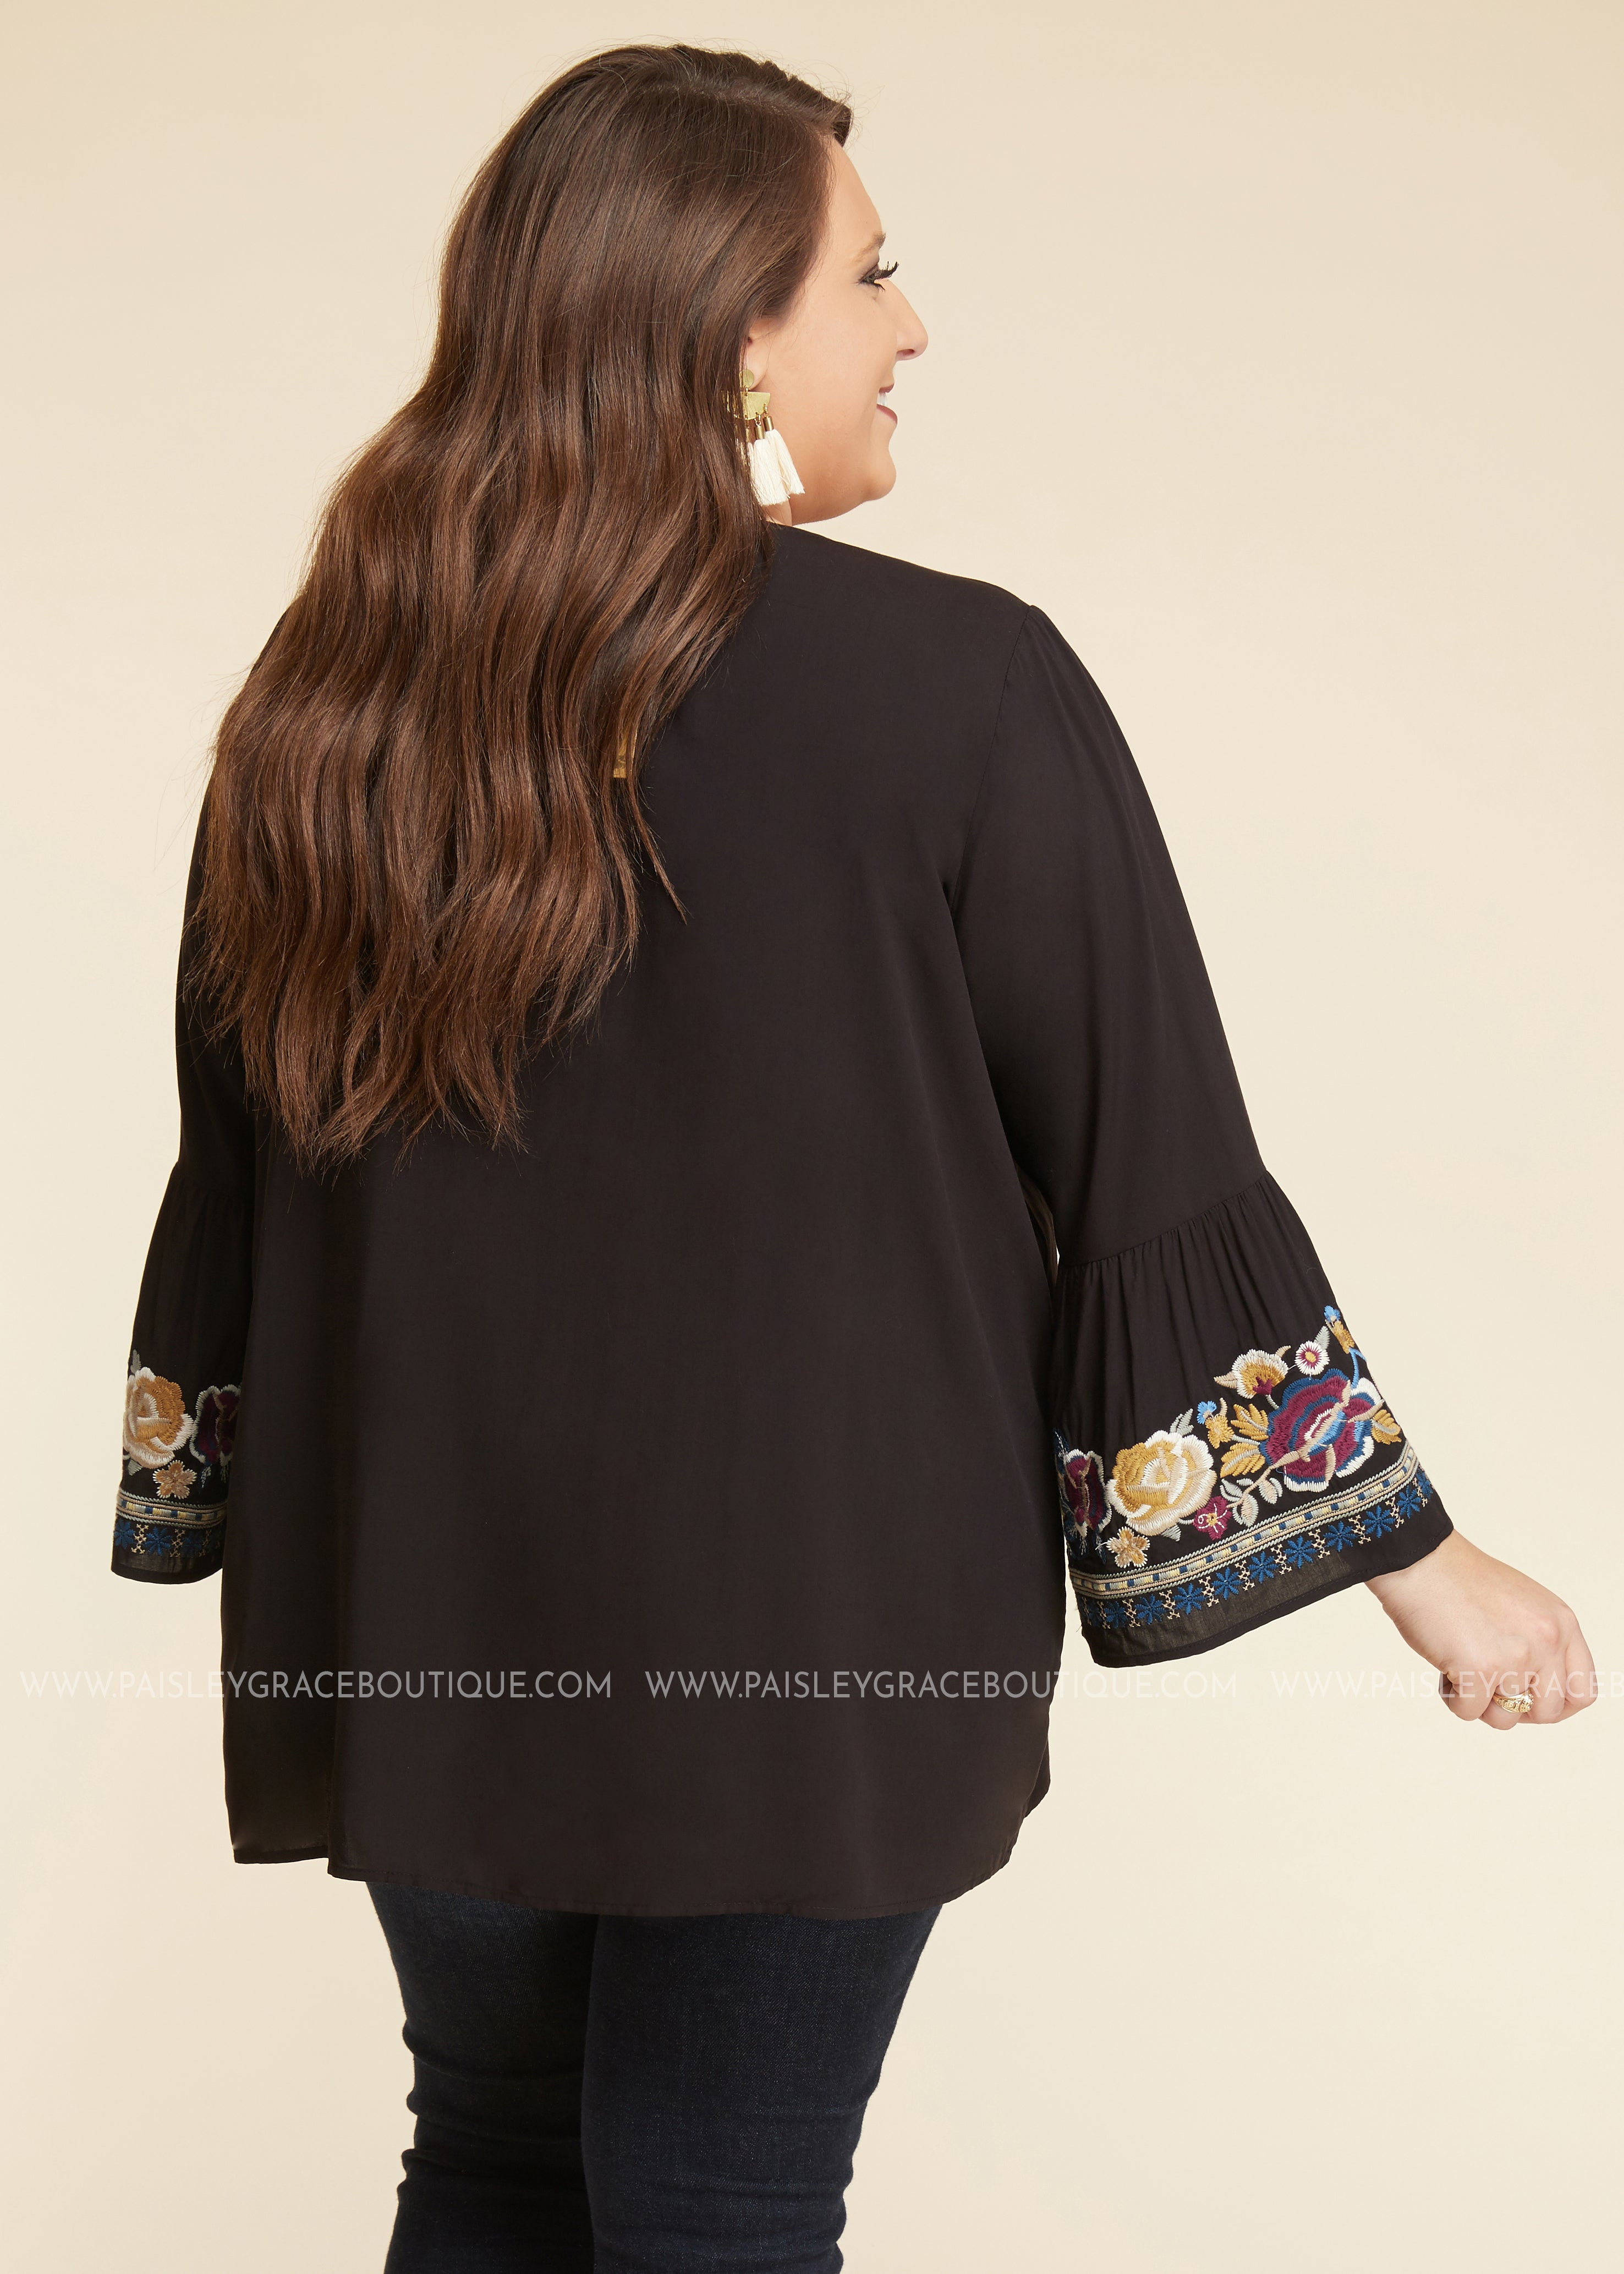 Chic Soul Embroidered Top - FINAL SALE